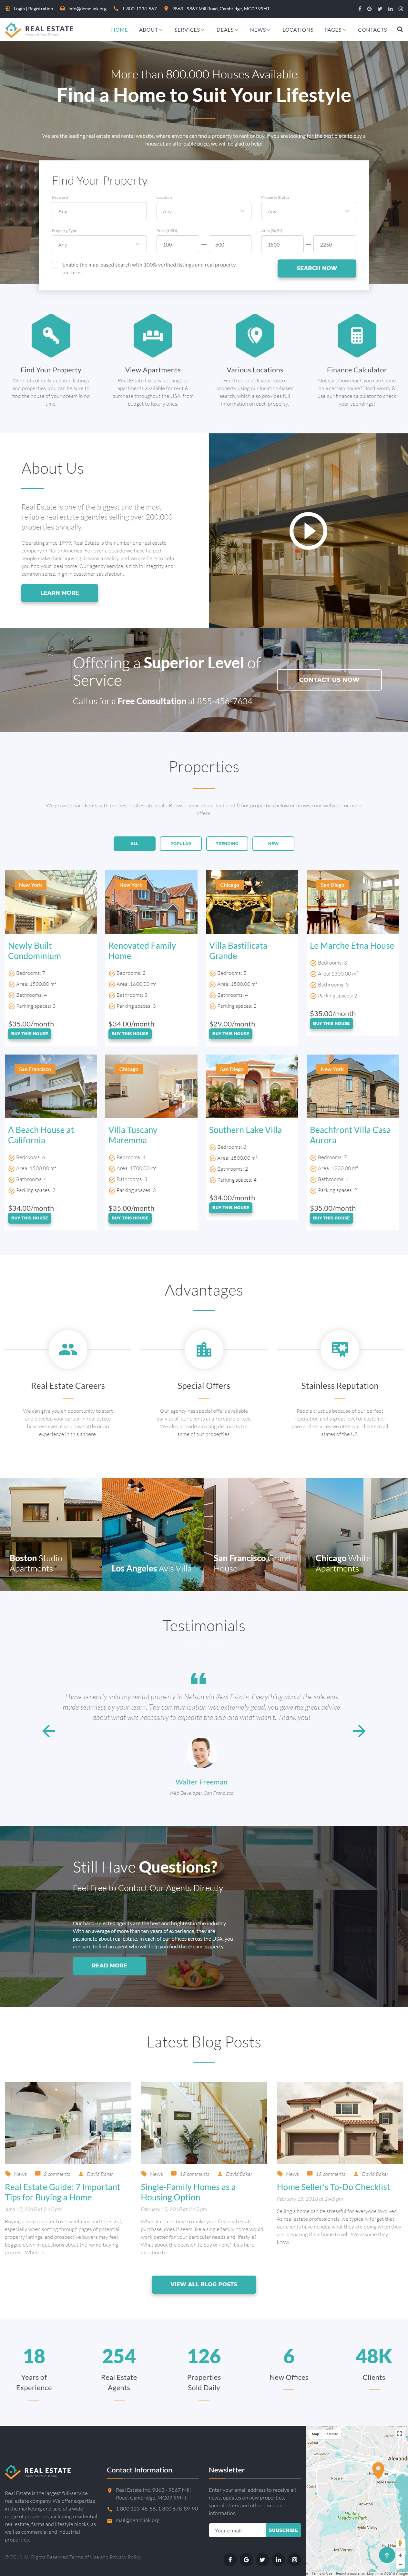 5 Latest Real Estate Website Templates 2018 Responsive Miracle